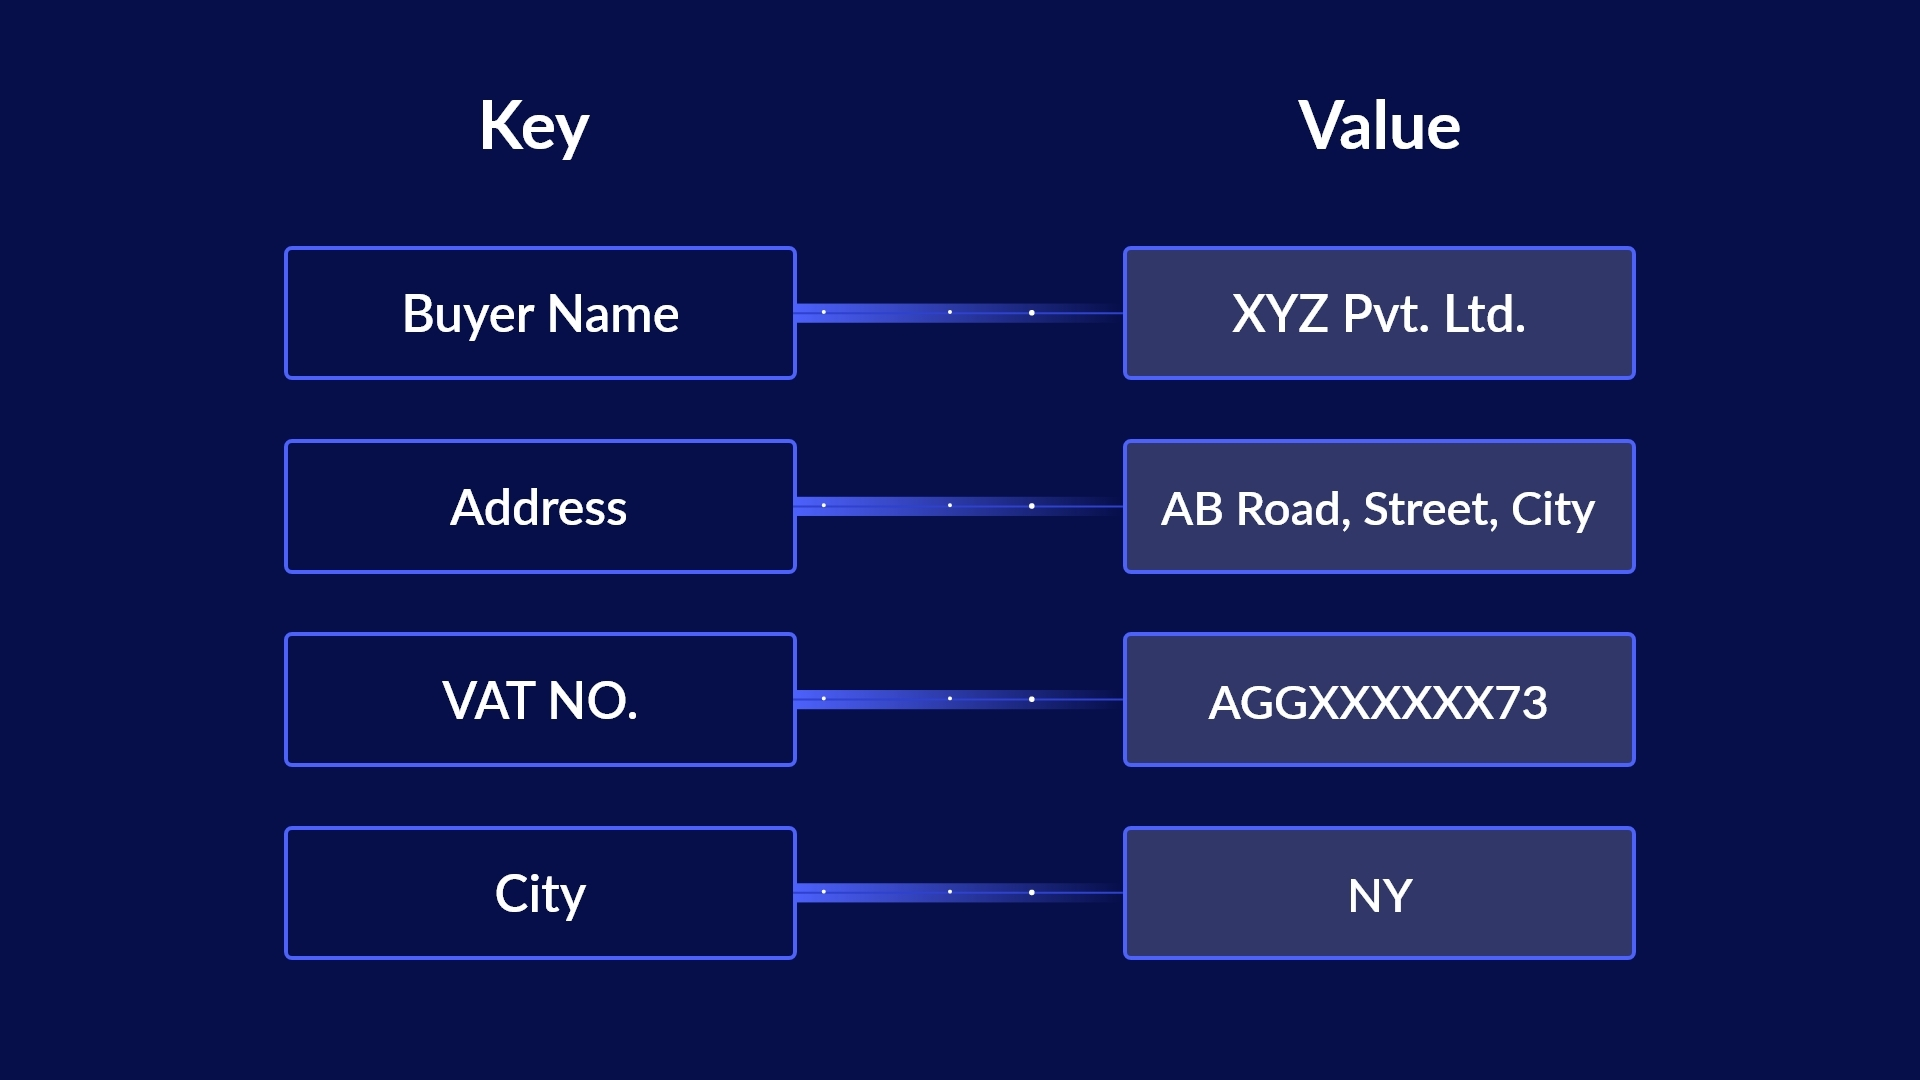 An Introduction to Key-Value Pair Extraction and Automation